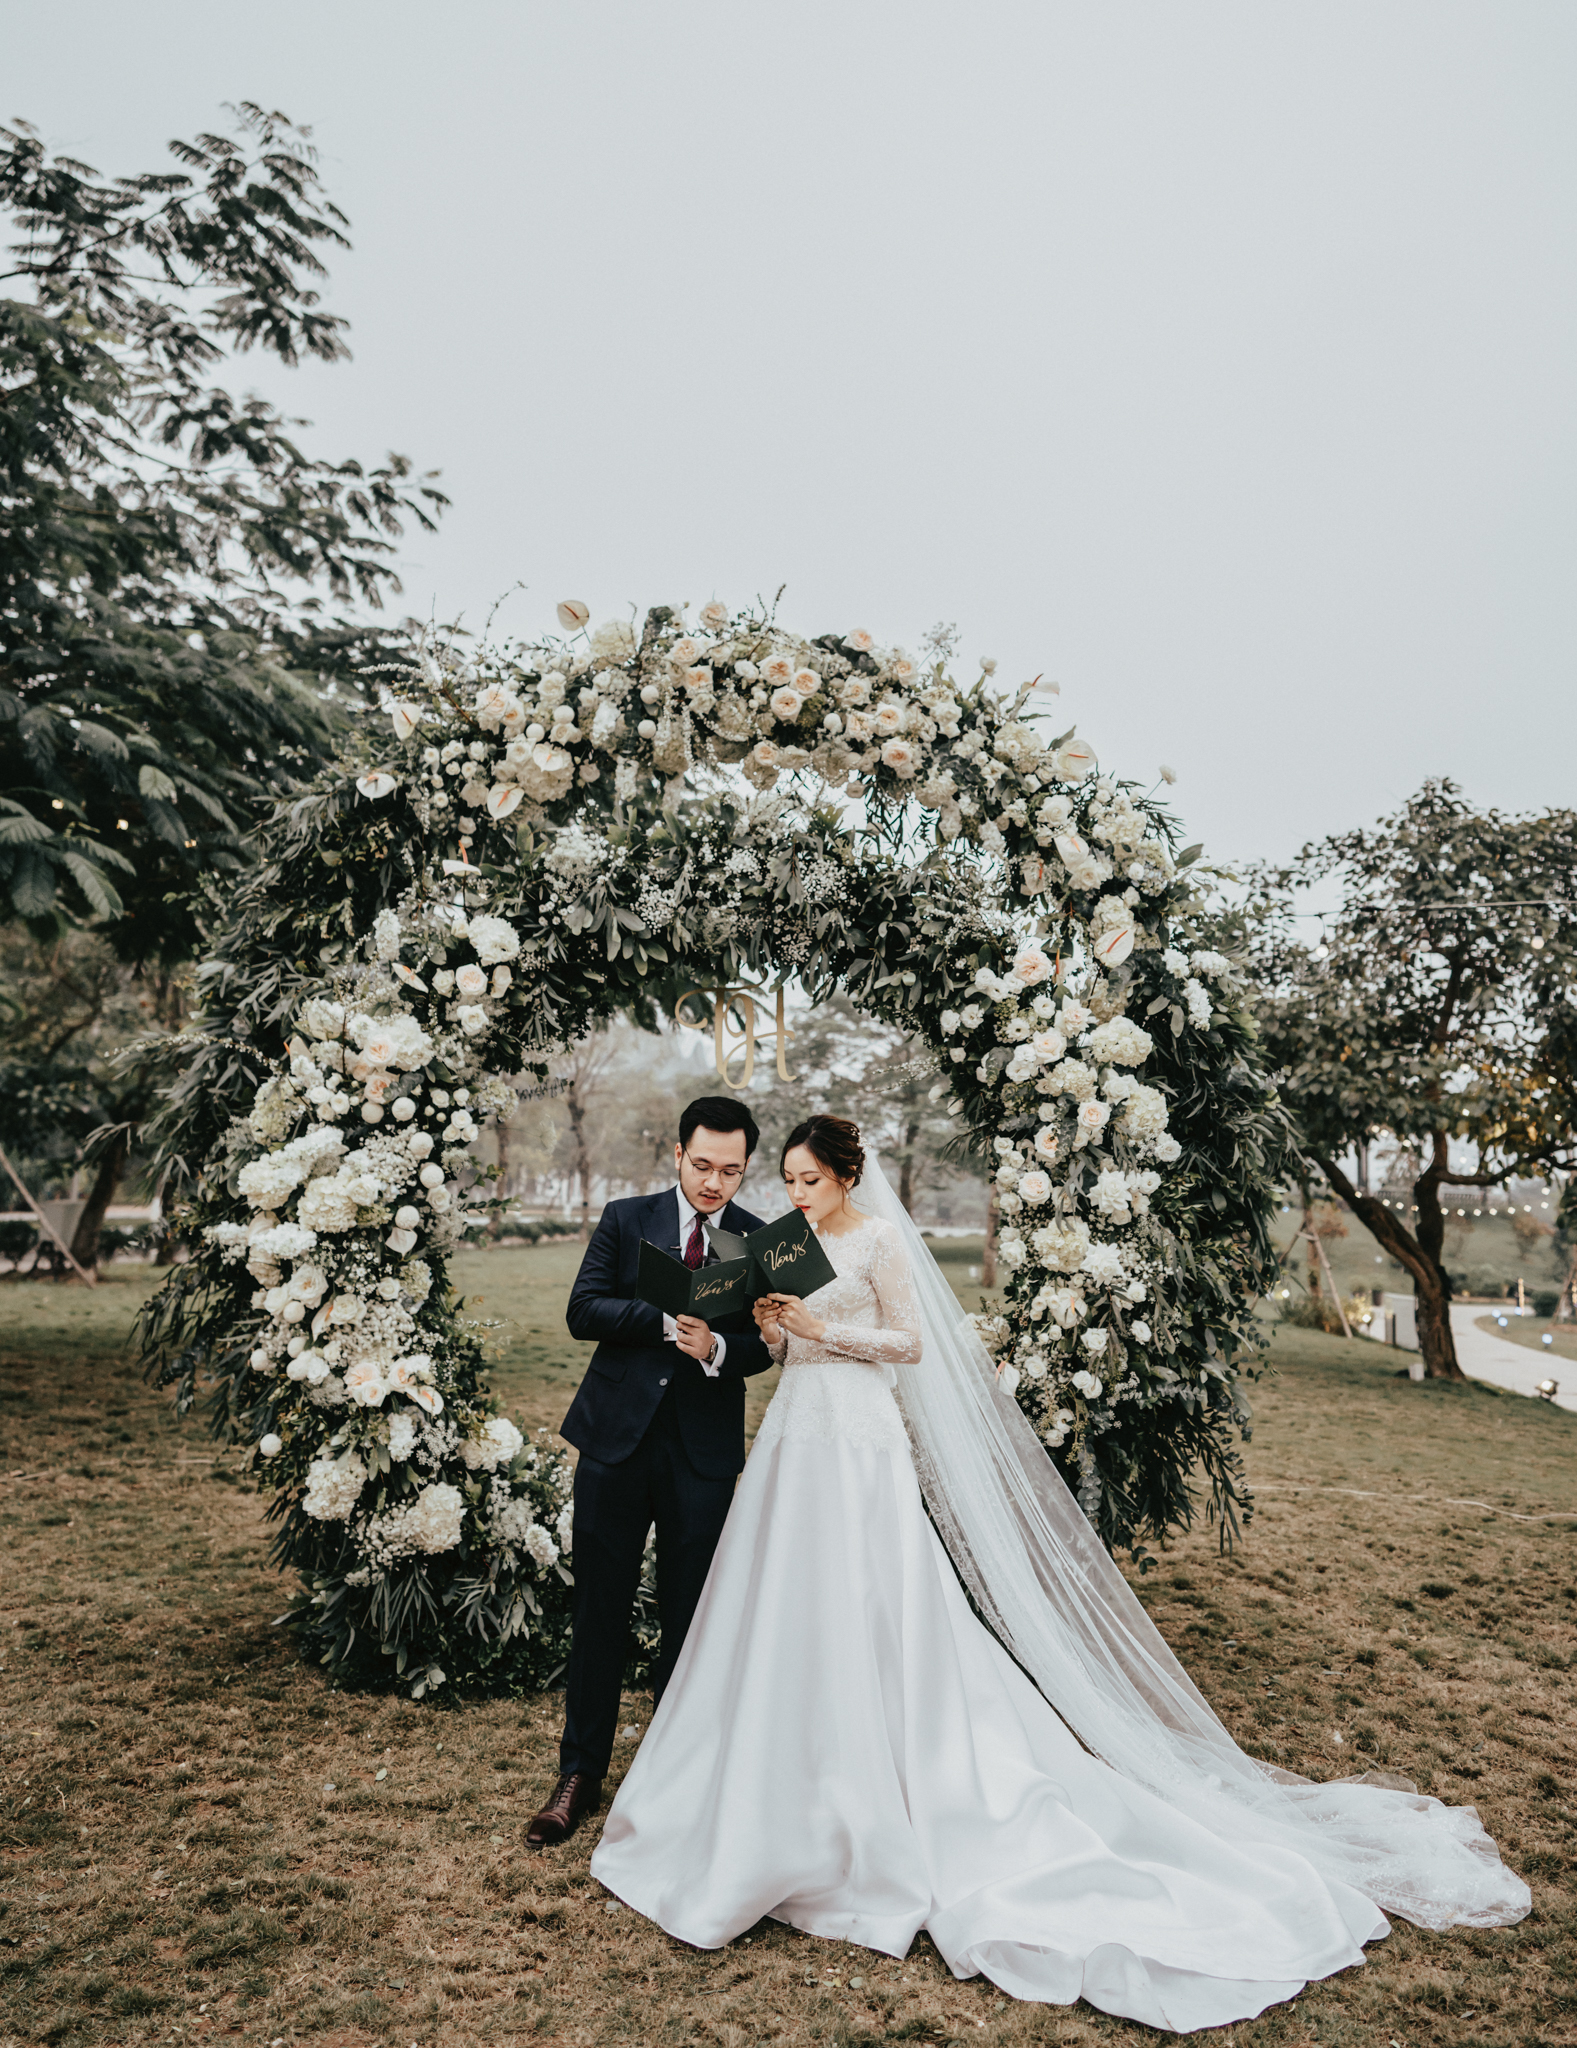 JWMarriott Ha Noi Intimate Wedding of Trang Hi well captured by Hipster Wedding Vietnam Wedding Photographer-35880.jpg